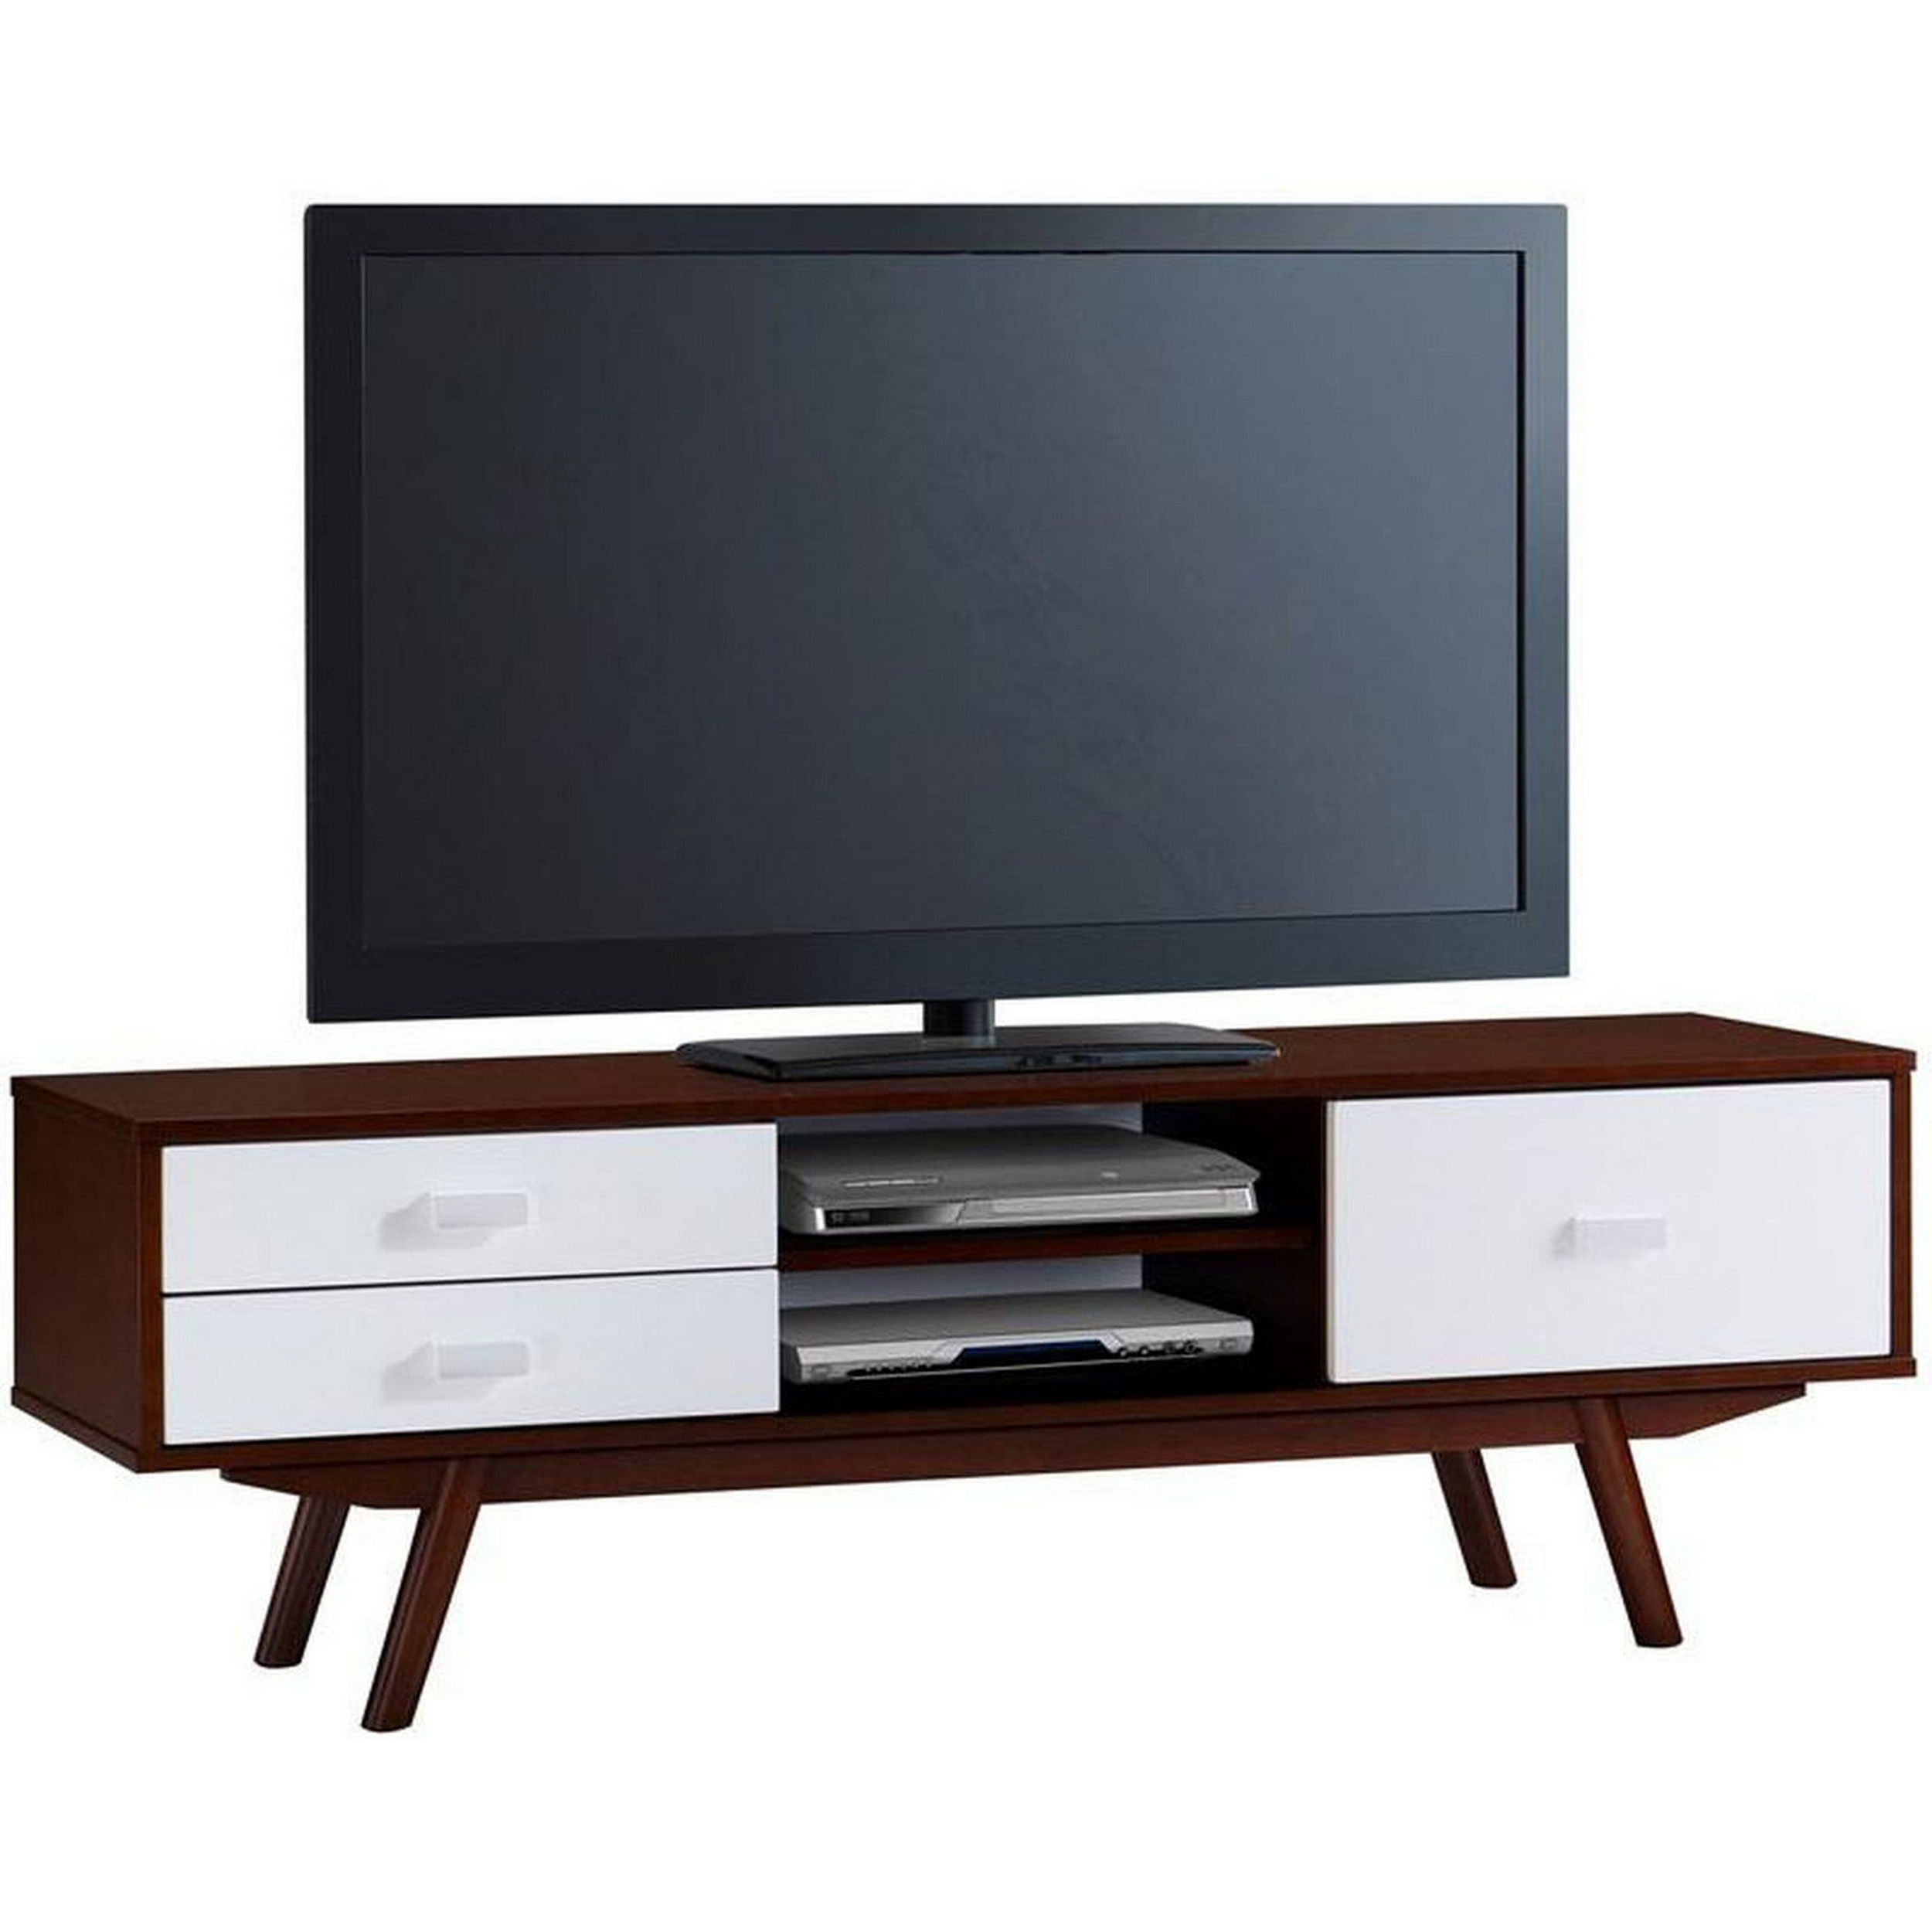 Shop Urban Designs Retro Wood Veneer Walnut 65 Tv Stand With Storage Regarding Rowan 64 Inch Tv Stands (View 20 of 20)